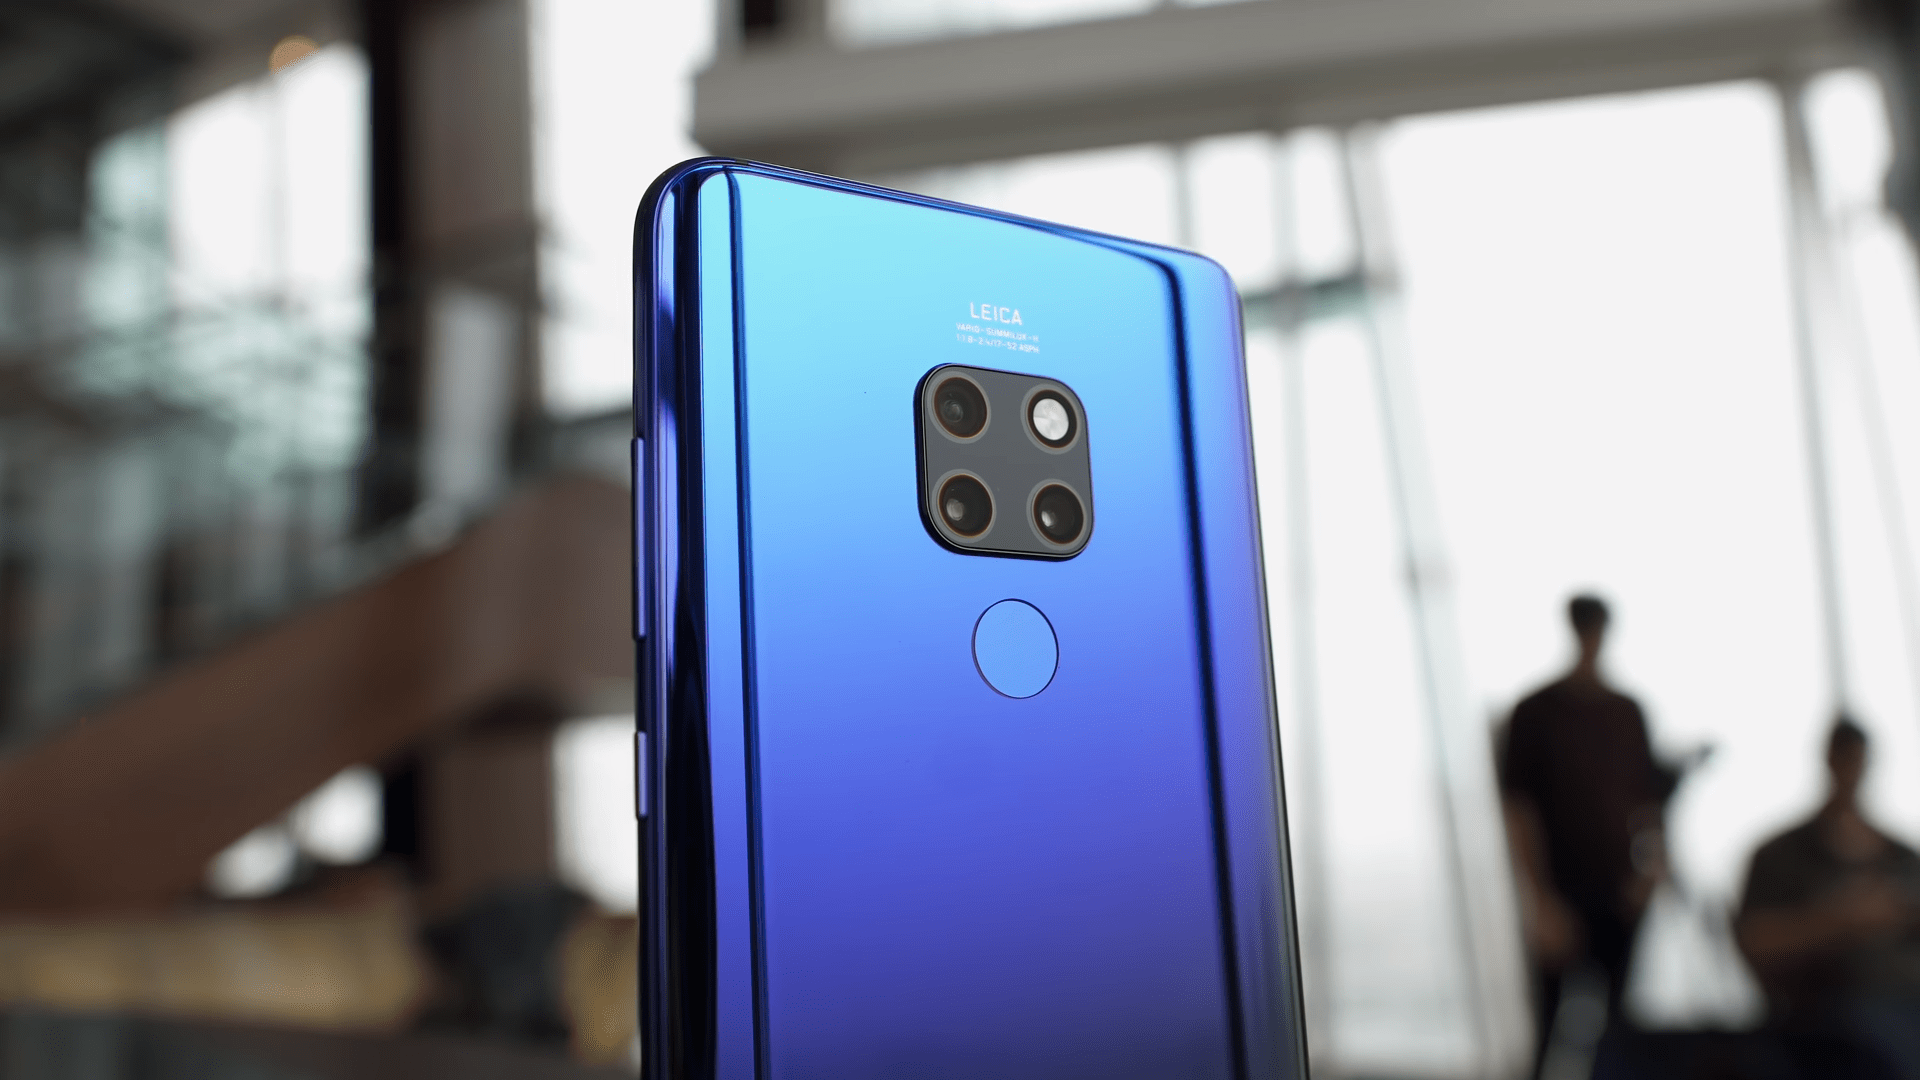 Huawei Mate 20 Black Friday deals